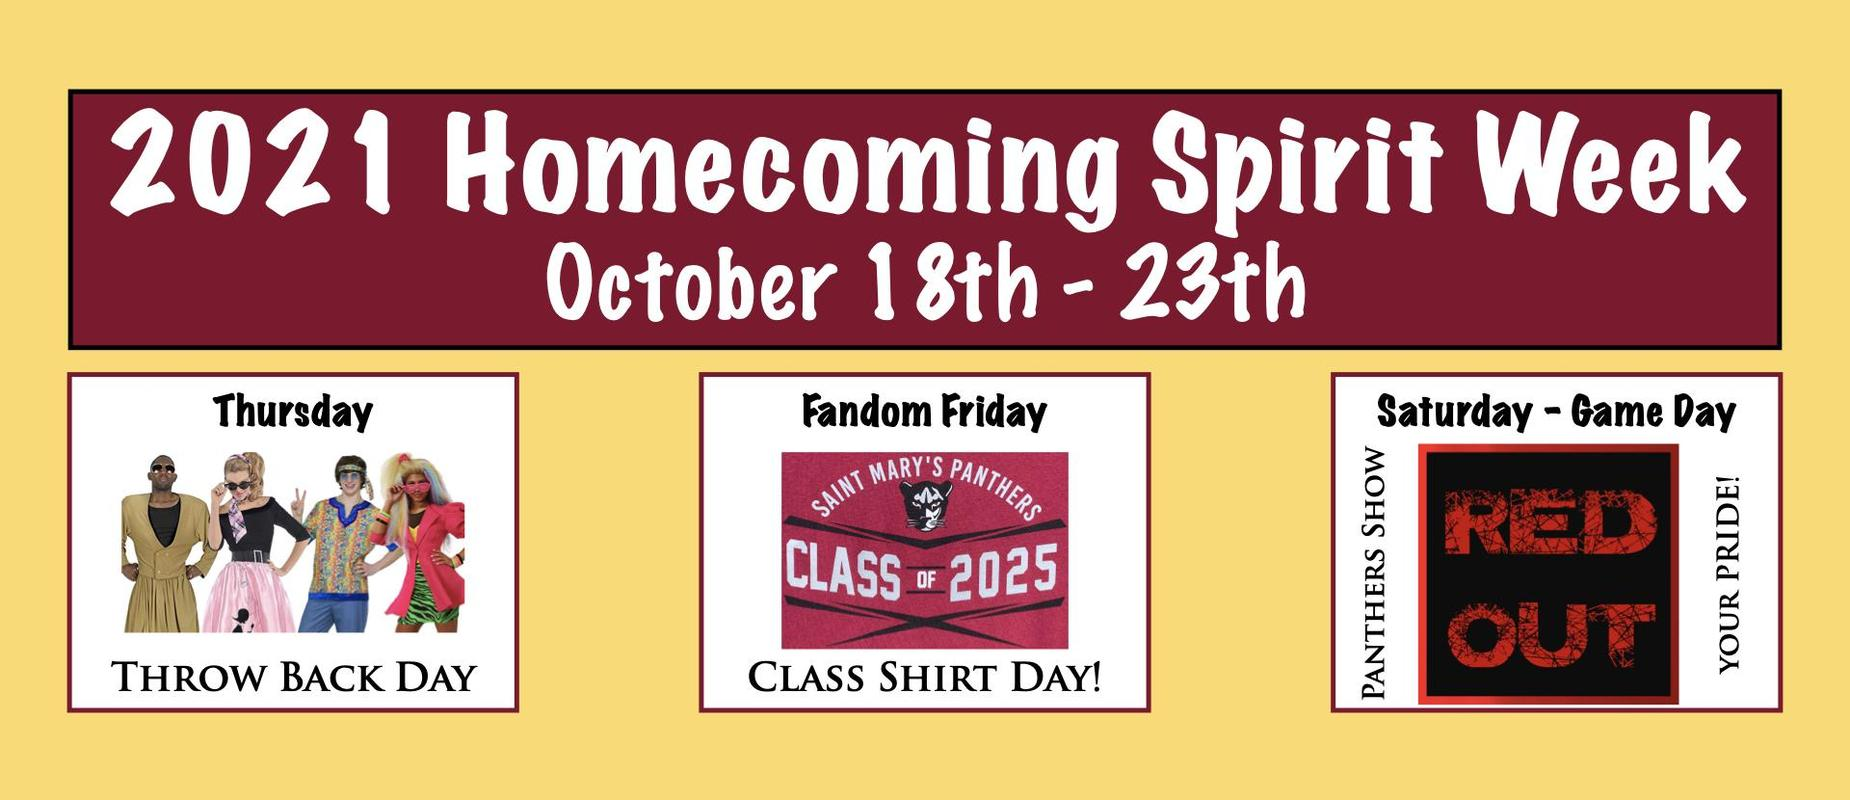 Final Three Days of Homecoming Week Graphic